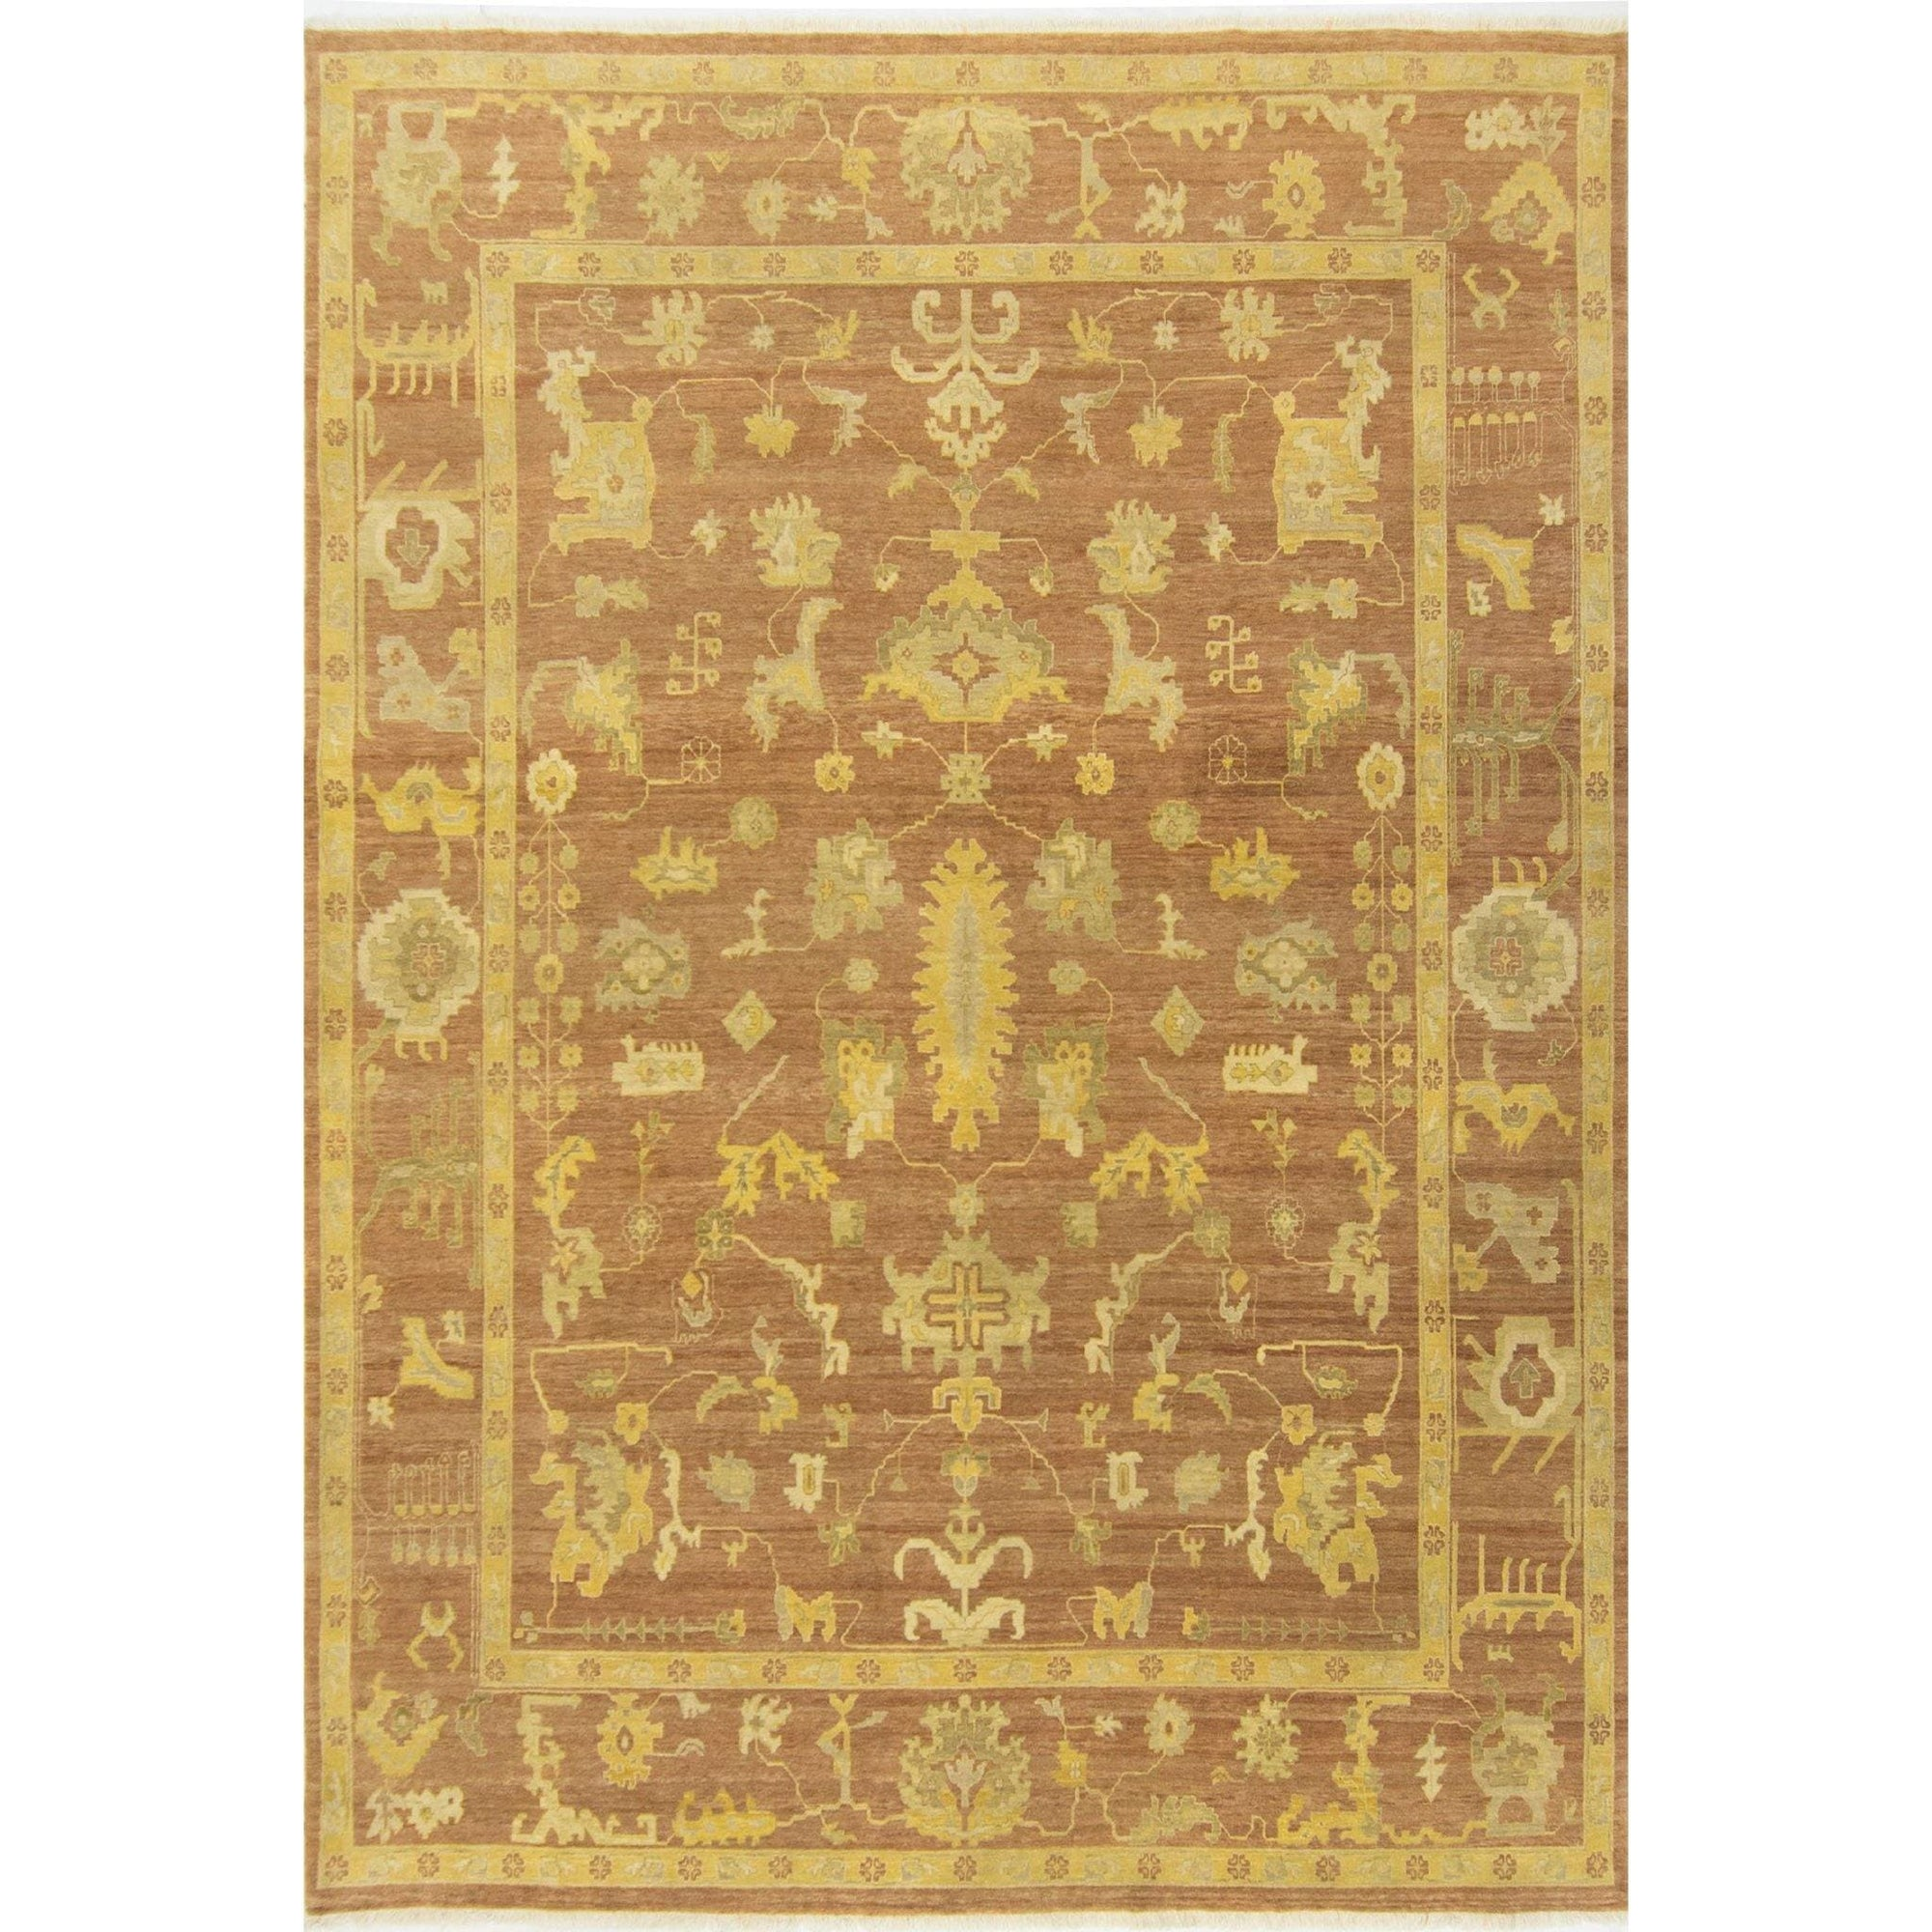 Fine Modern Hand-knotted Ushak Rug 280cm x 363cm Persian-Rug | House-of-Haghi | NewMarket | Auckland | NZ | Handmade Persian Rugs | Hand Knotted Persian Rugs